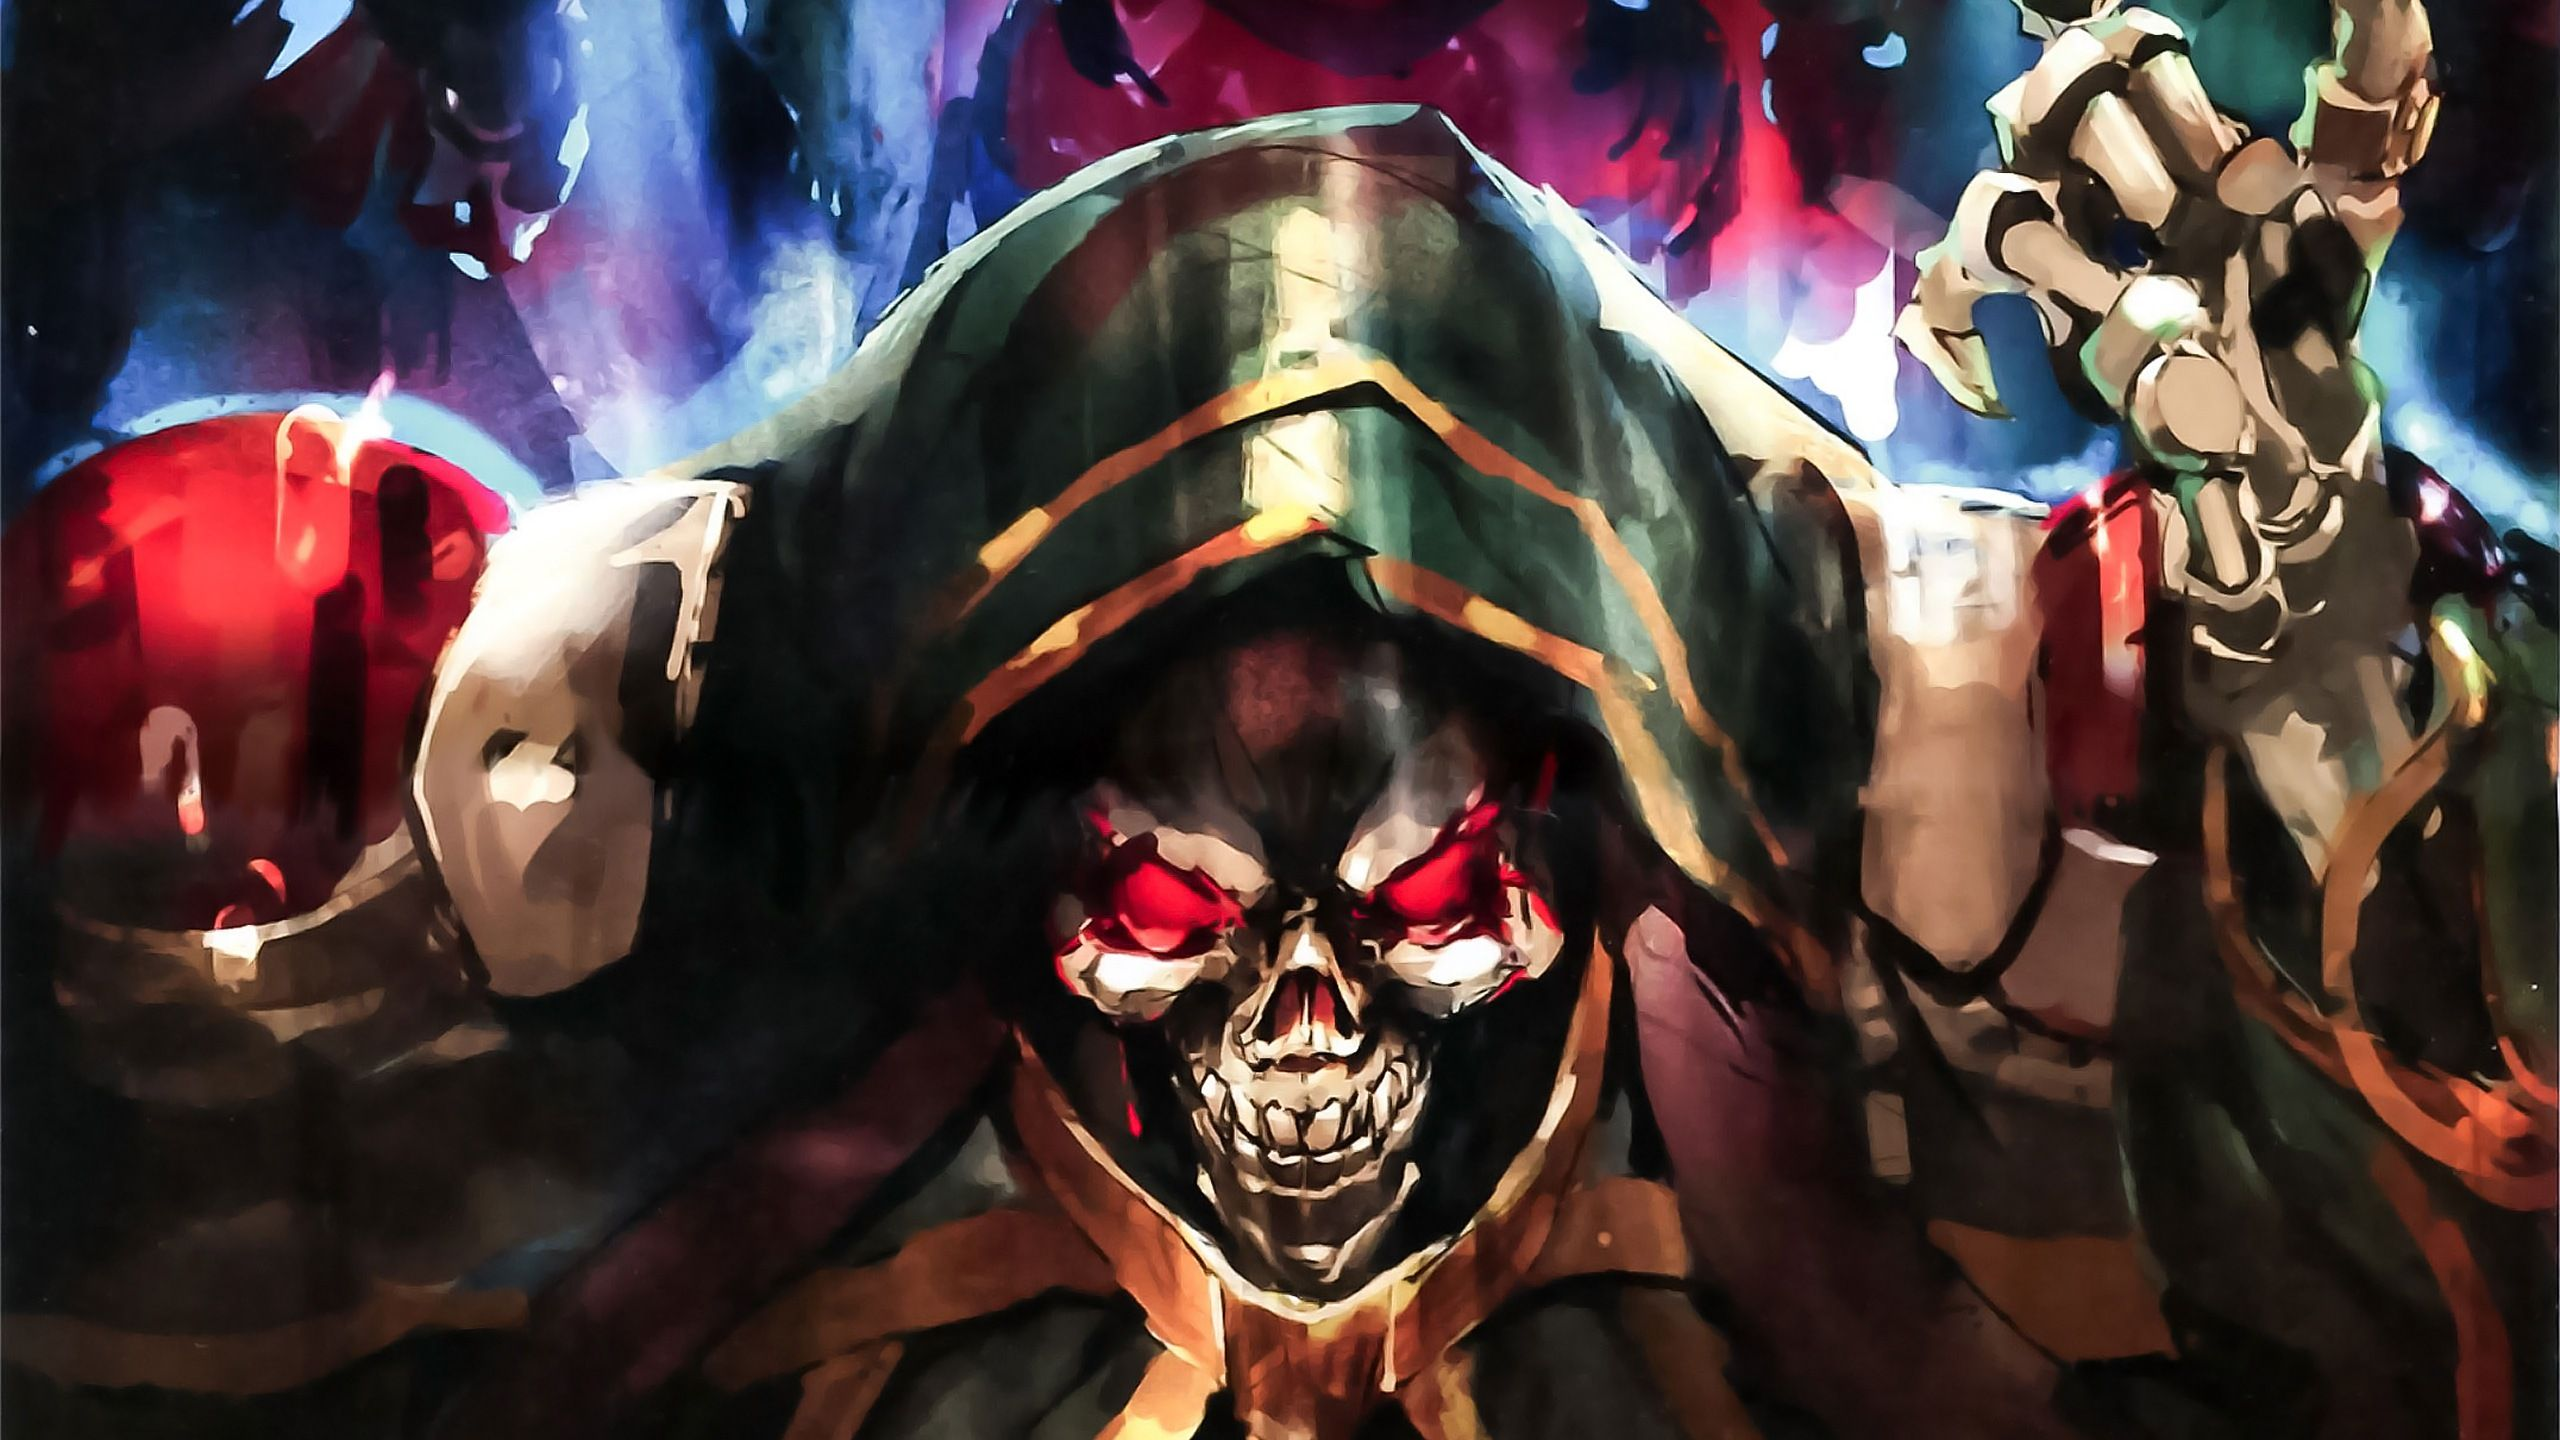 Ainz Ooal Gown Computer Wallpapers Desktop Backgrounds 2560x1440 Id 655515 Anime Smile Anime Anime Characters